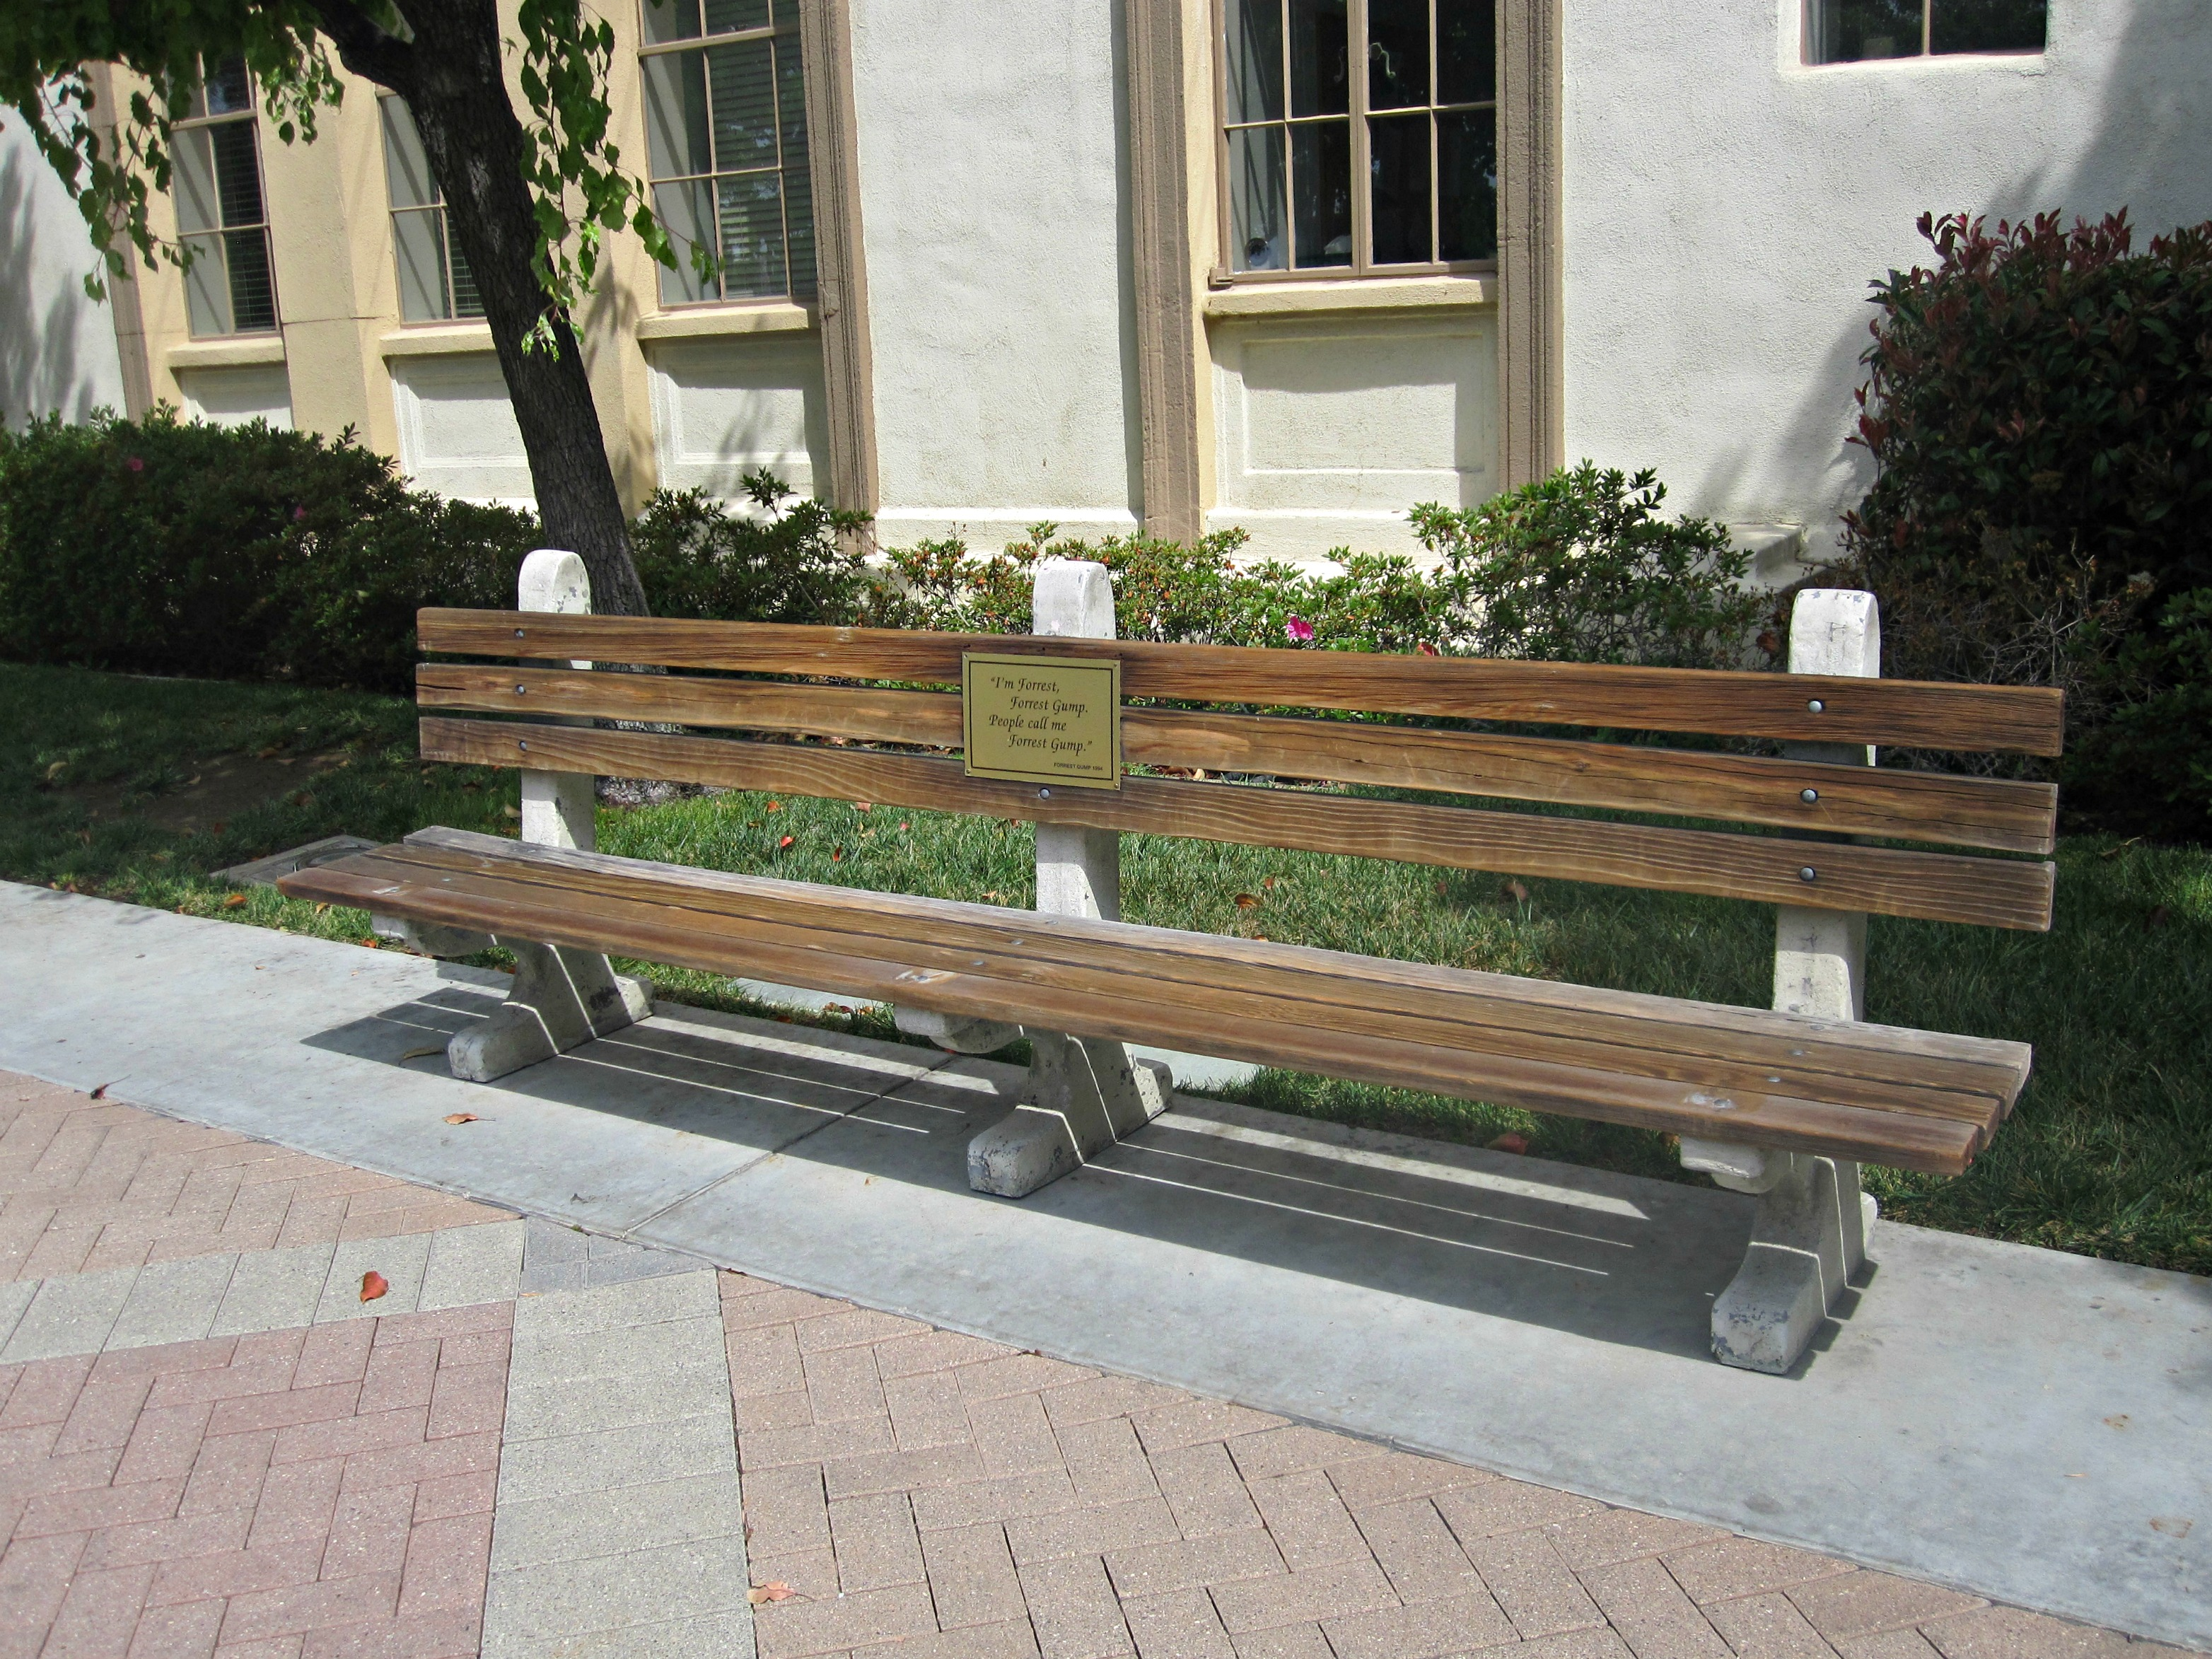 Bench used in Forest Gump.